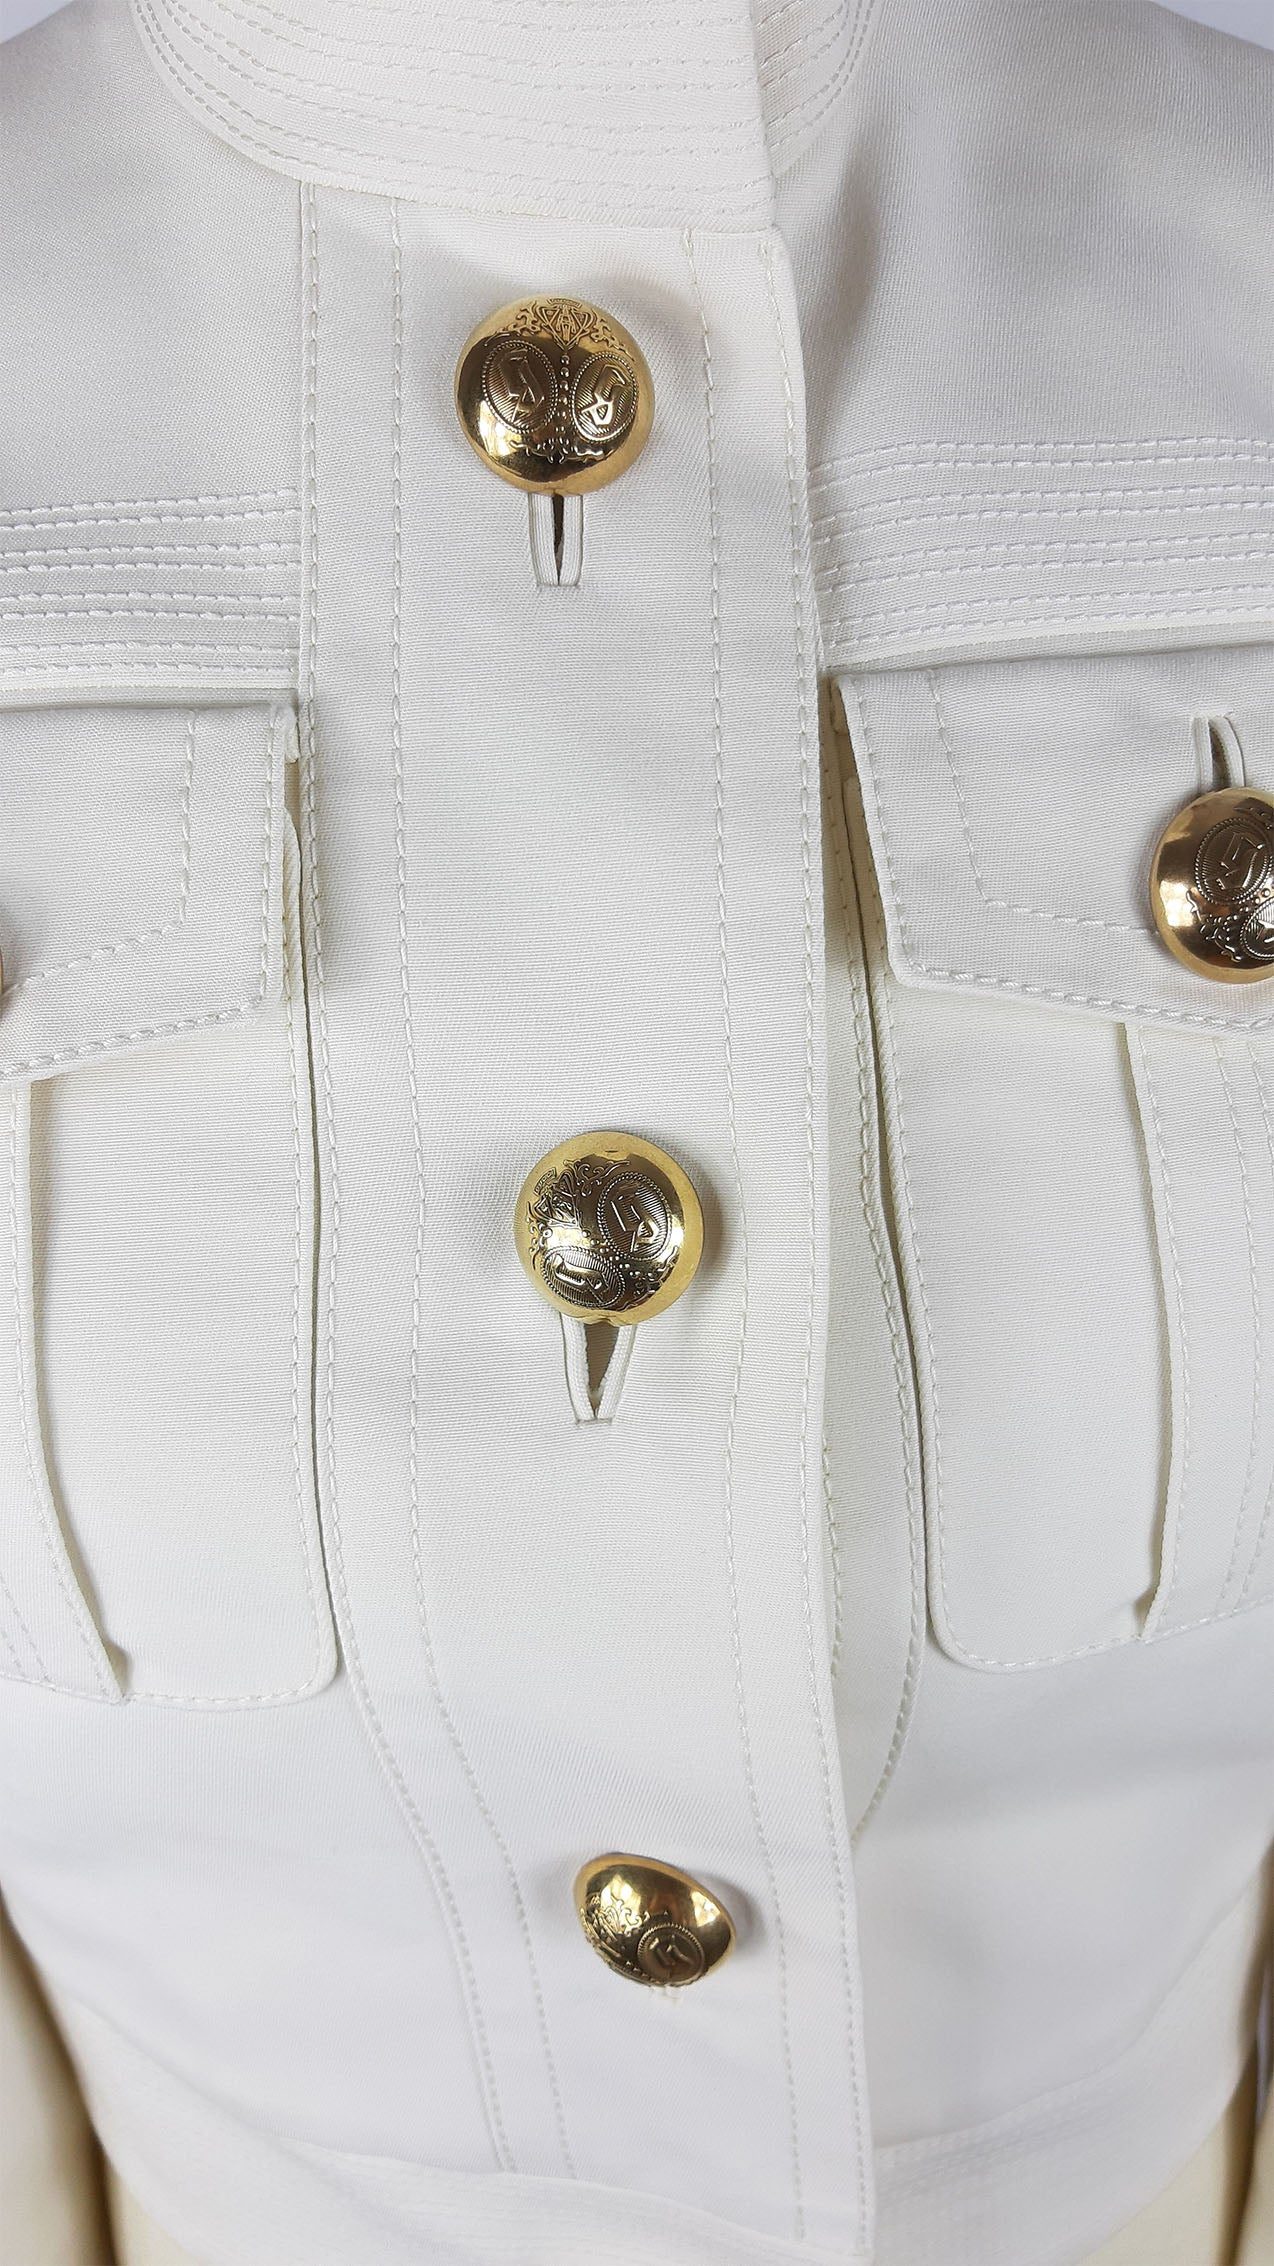 GUCCI Blouson White/Cream Jacket with High Collar with Gold Detailed Buttons and Visible Seams  Size 38(EU)